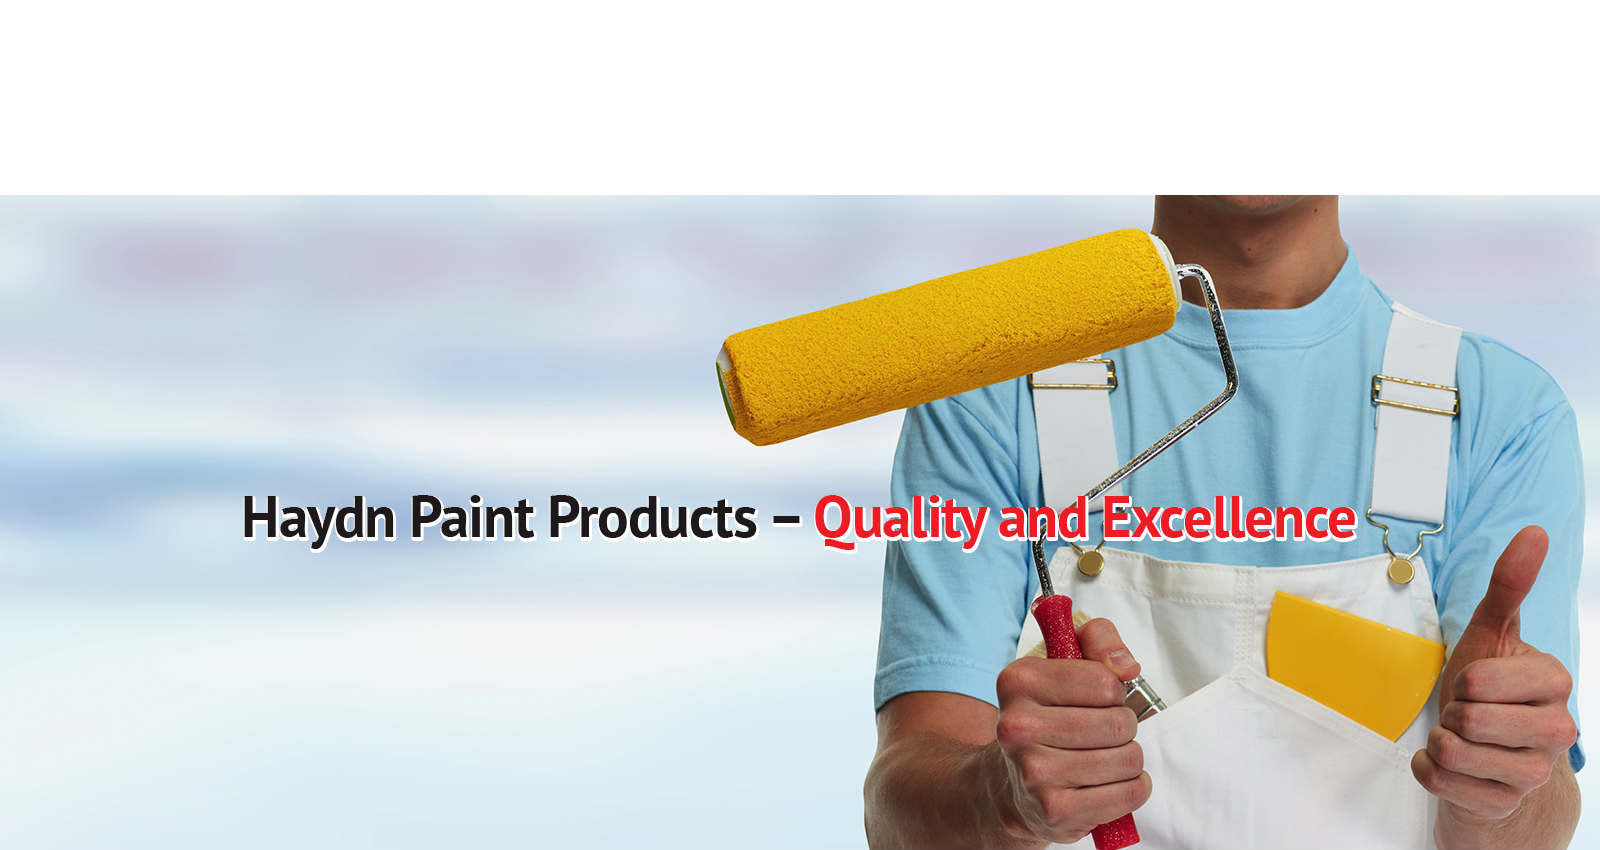 Hydan Paint Prouducts Now Available at Best Trade Tools